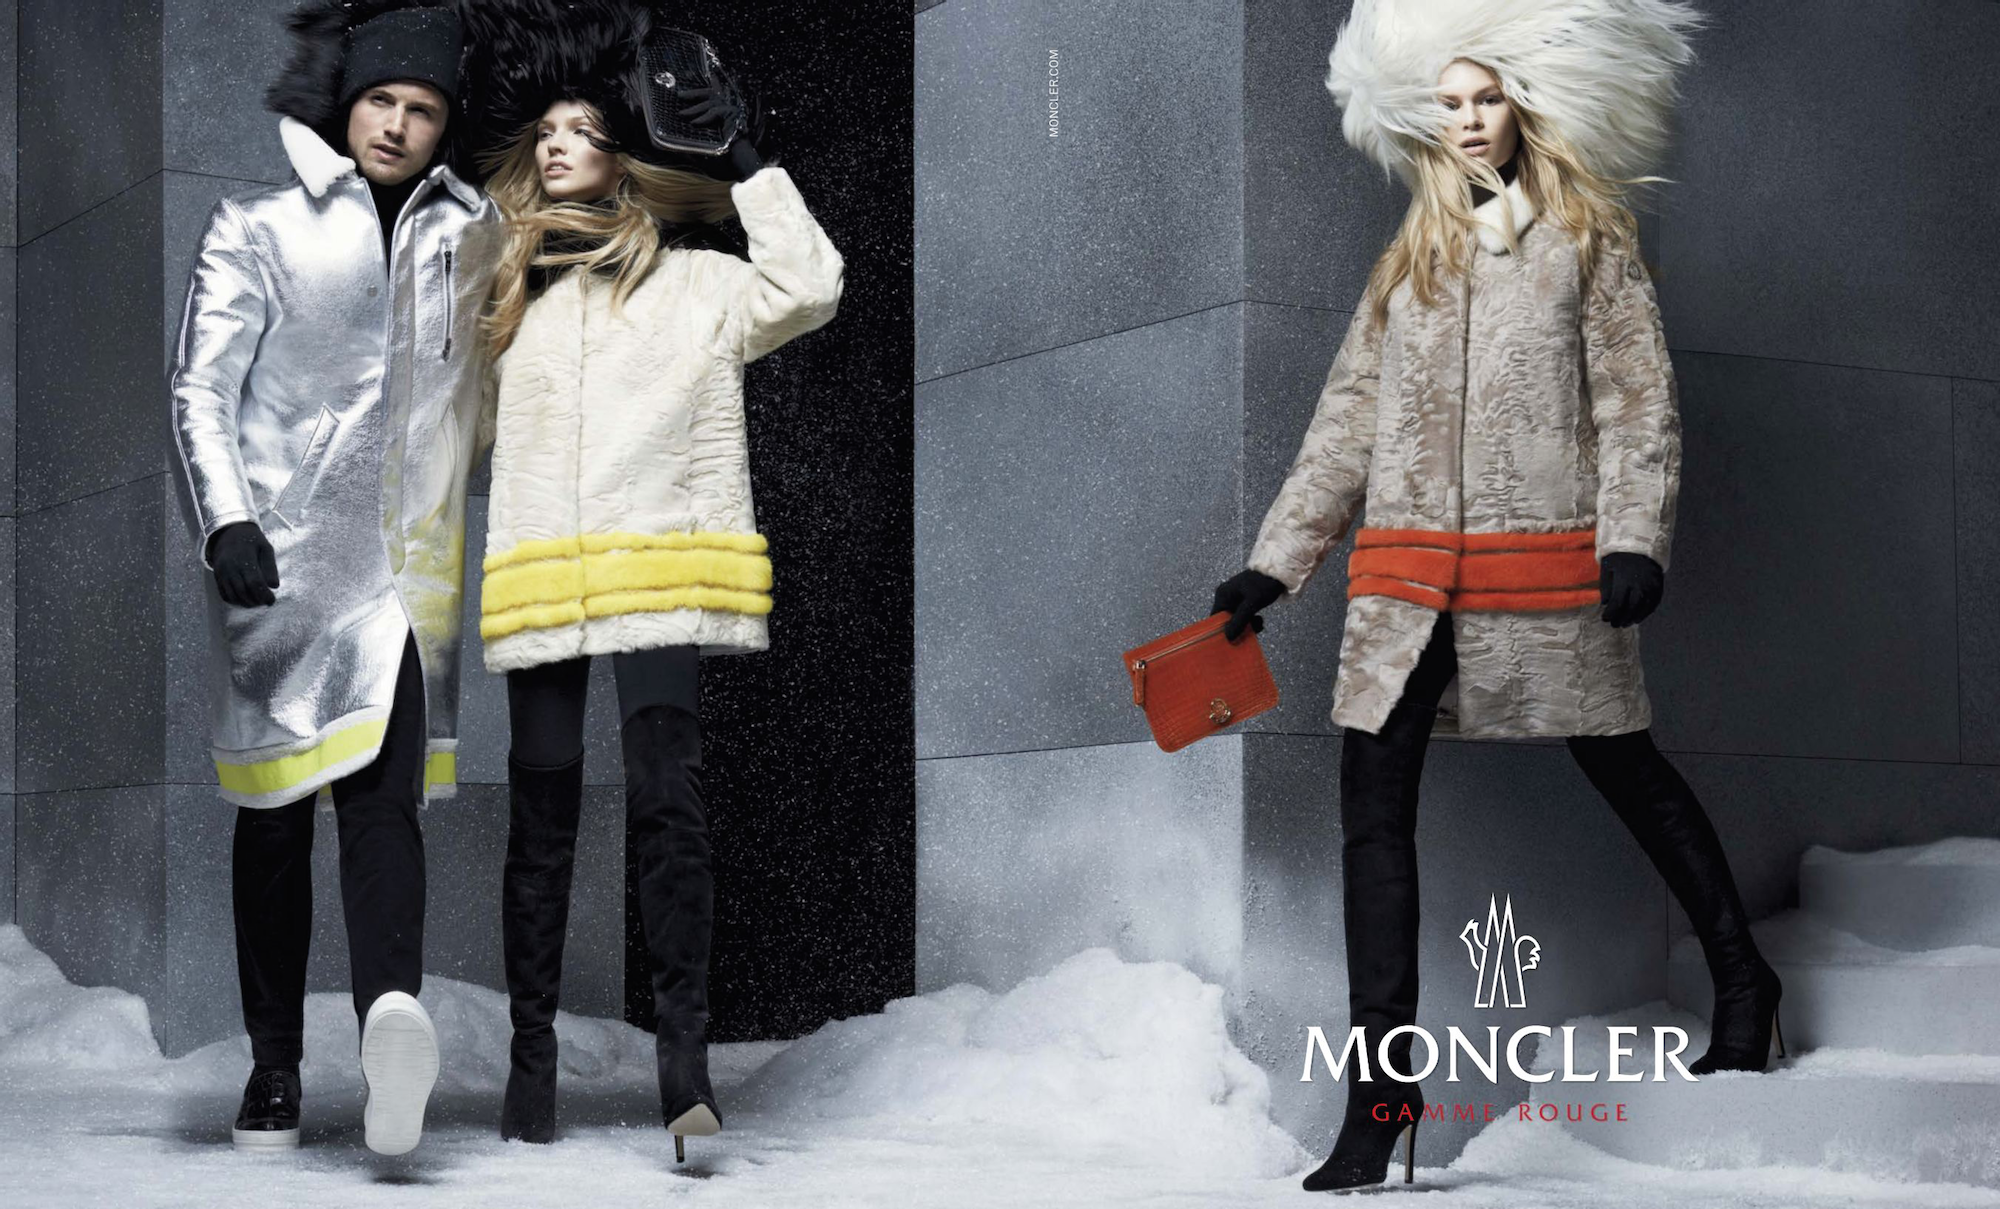 moncler ad 2015